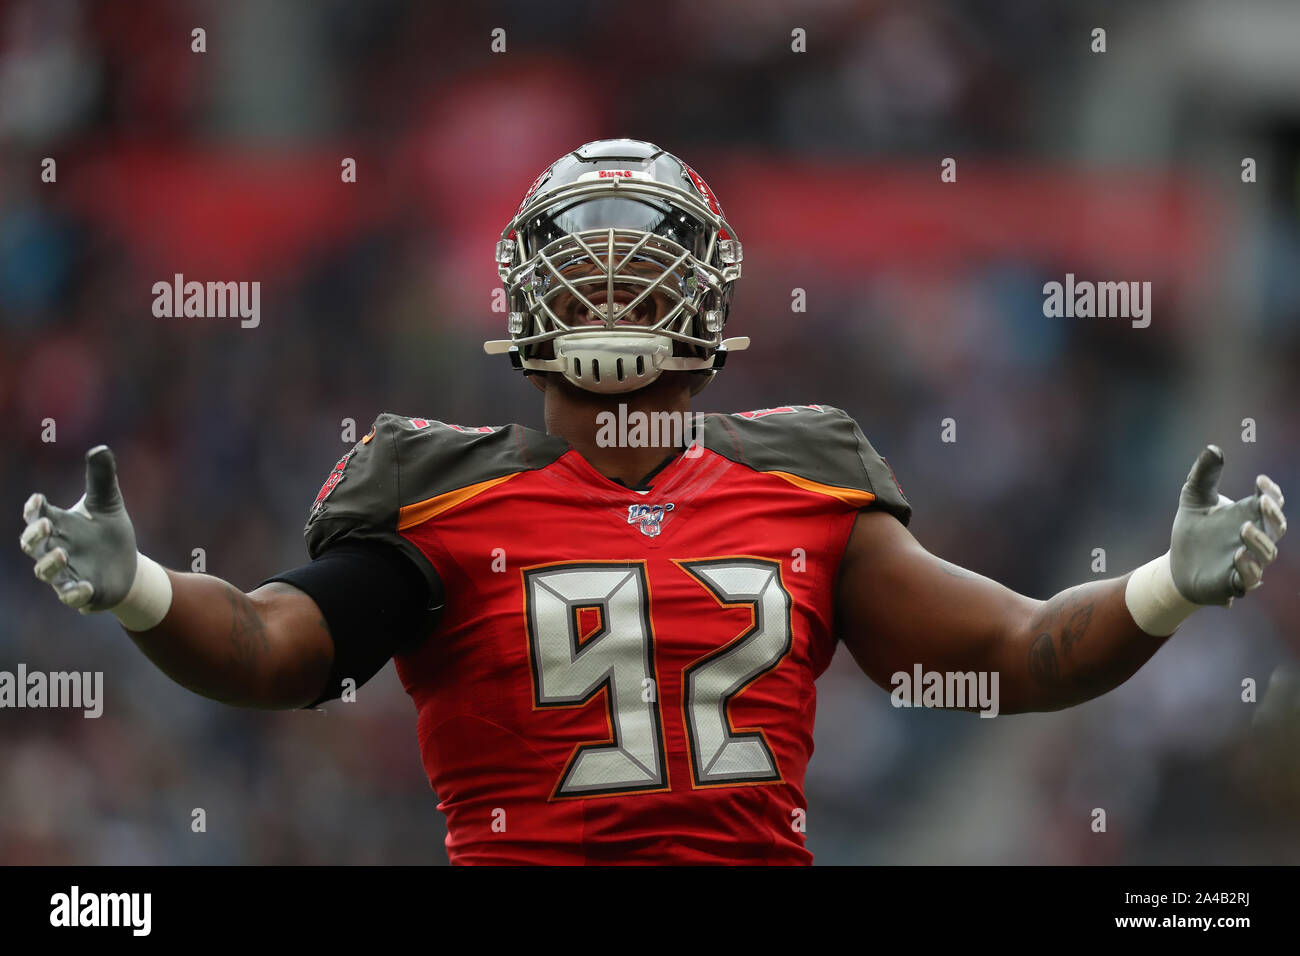 Tottenham Hotspur Stadium, London, UK. 13th Oct, 2019. National Football League, Carolina Panthers versus Tampa Bay Buccaneers; Tampa Bay Buccaneers Defensive Linesman William Gholston (92) celebrates in front of the Buccaneers crowd -Editorial Use Credit: Action Plus Sports/Alamy Live News Stock Photo